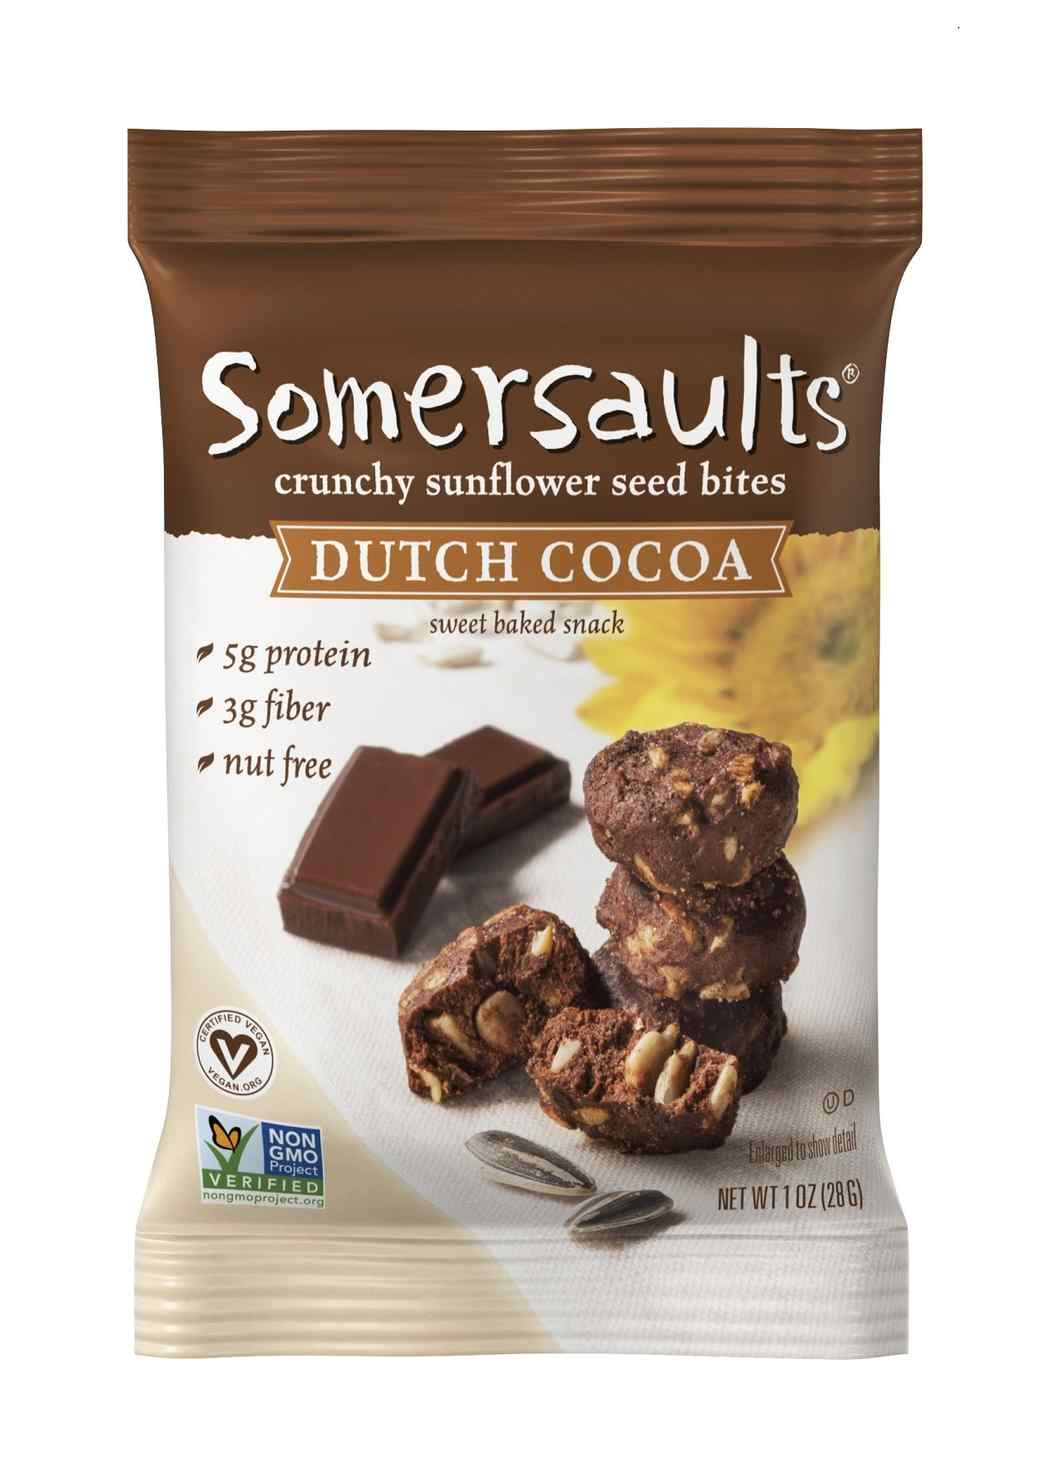 Somersaults-Dutch-Cocoa--Martha-Stewart--Foods-Not-to-Give-Up.jpg (skyword:218612)